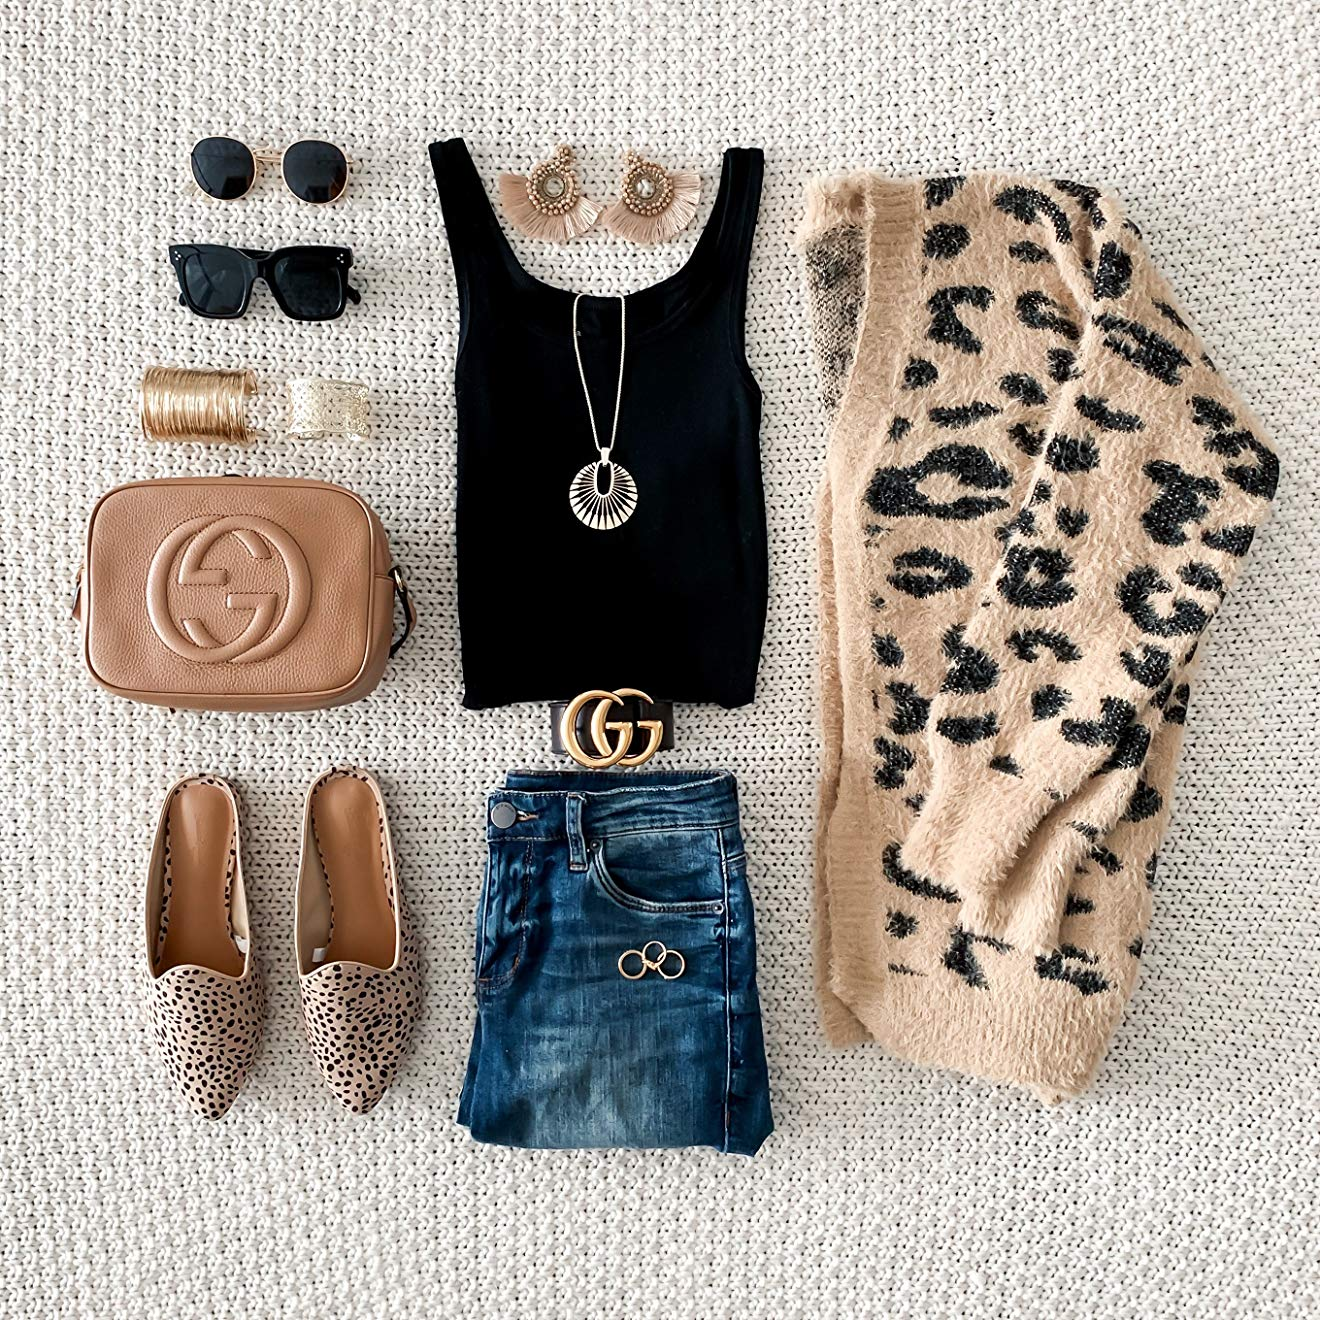 SHOP THE LOOK:  Retro Oversized Square Sunglasses,  $12.99  / Besteel 2 Pcs Cuff Bangle Bracelet Set,  $15  / Reflective Lens Round Trendy Sunglasses,  $14  / Leopard Print Button Down Long Sleeve Soft Loose Knit Sweater Cardigan,  $28